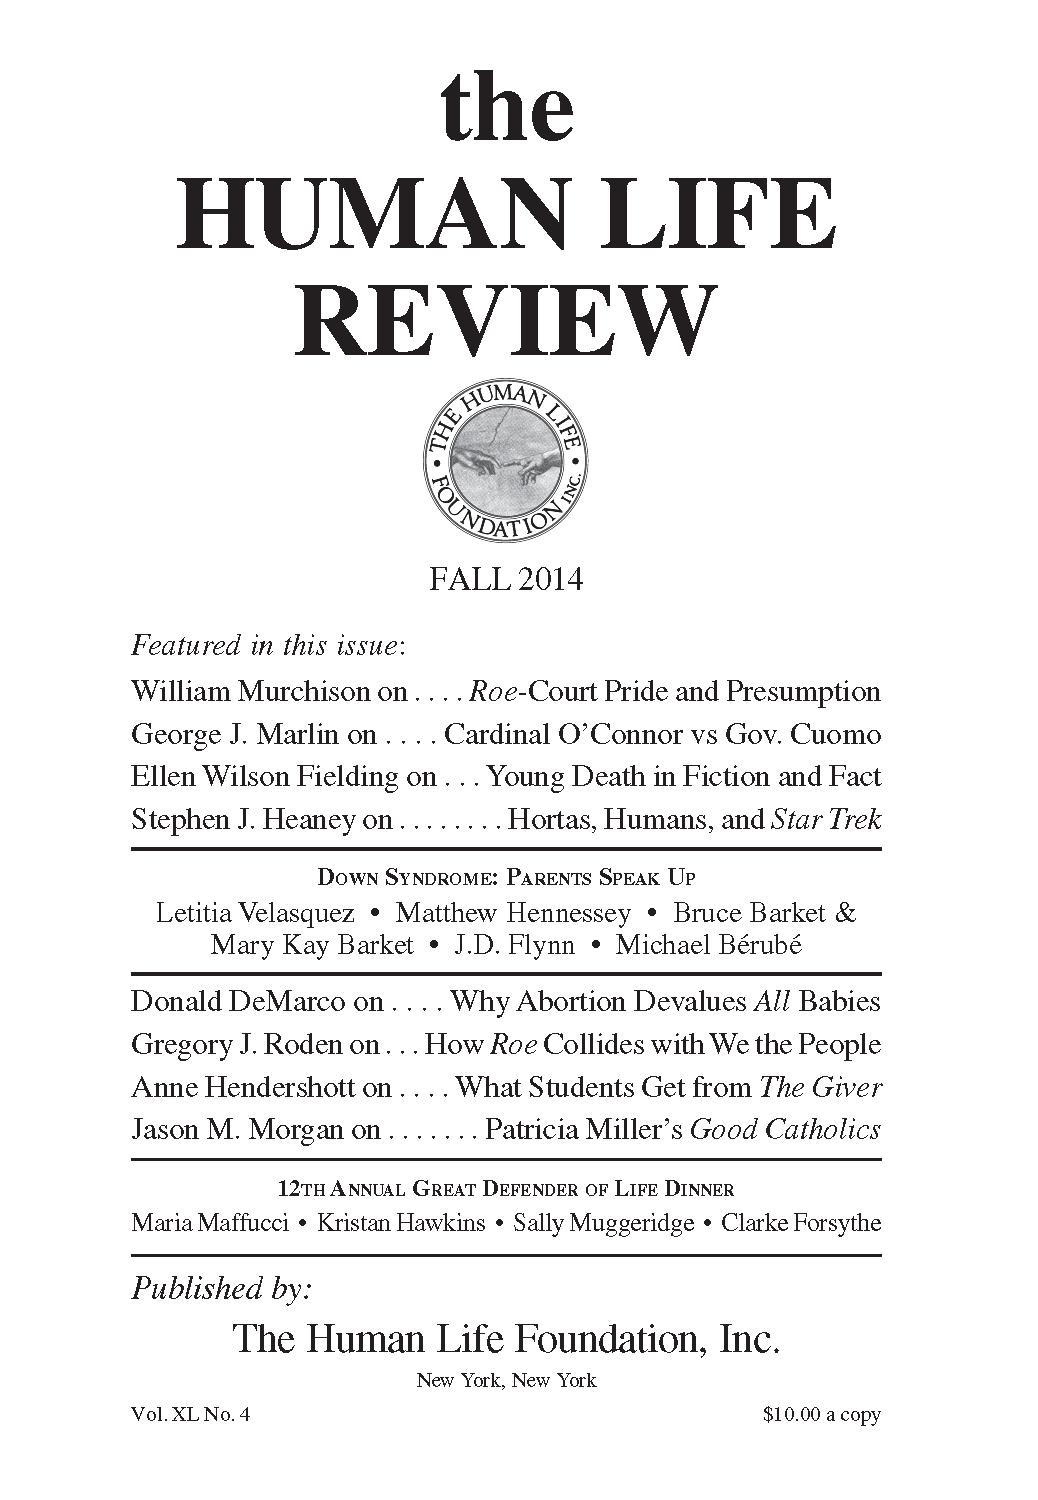 The Human Life Review Fall 2014 - The Human Life Review